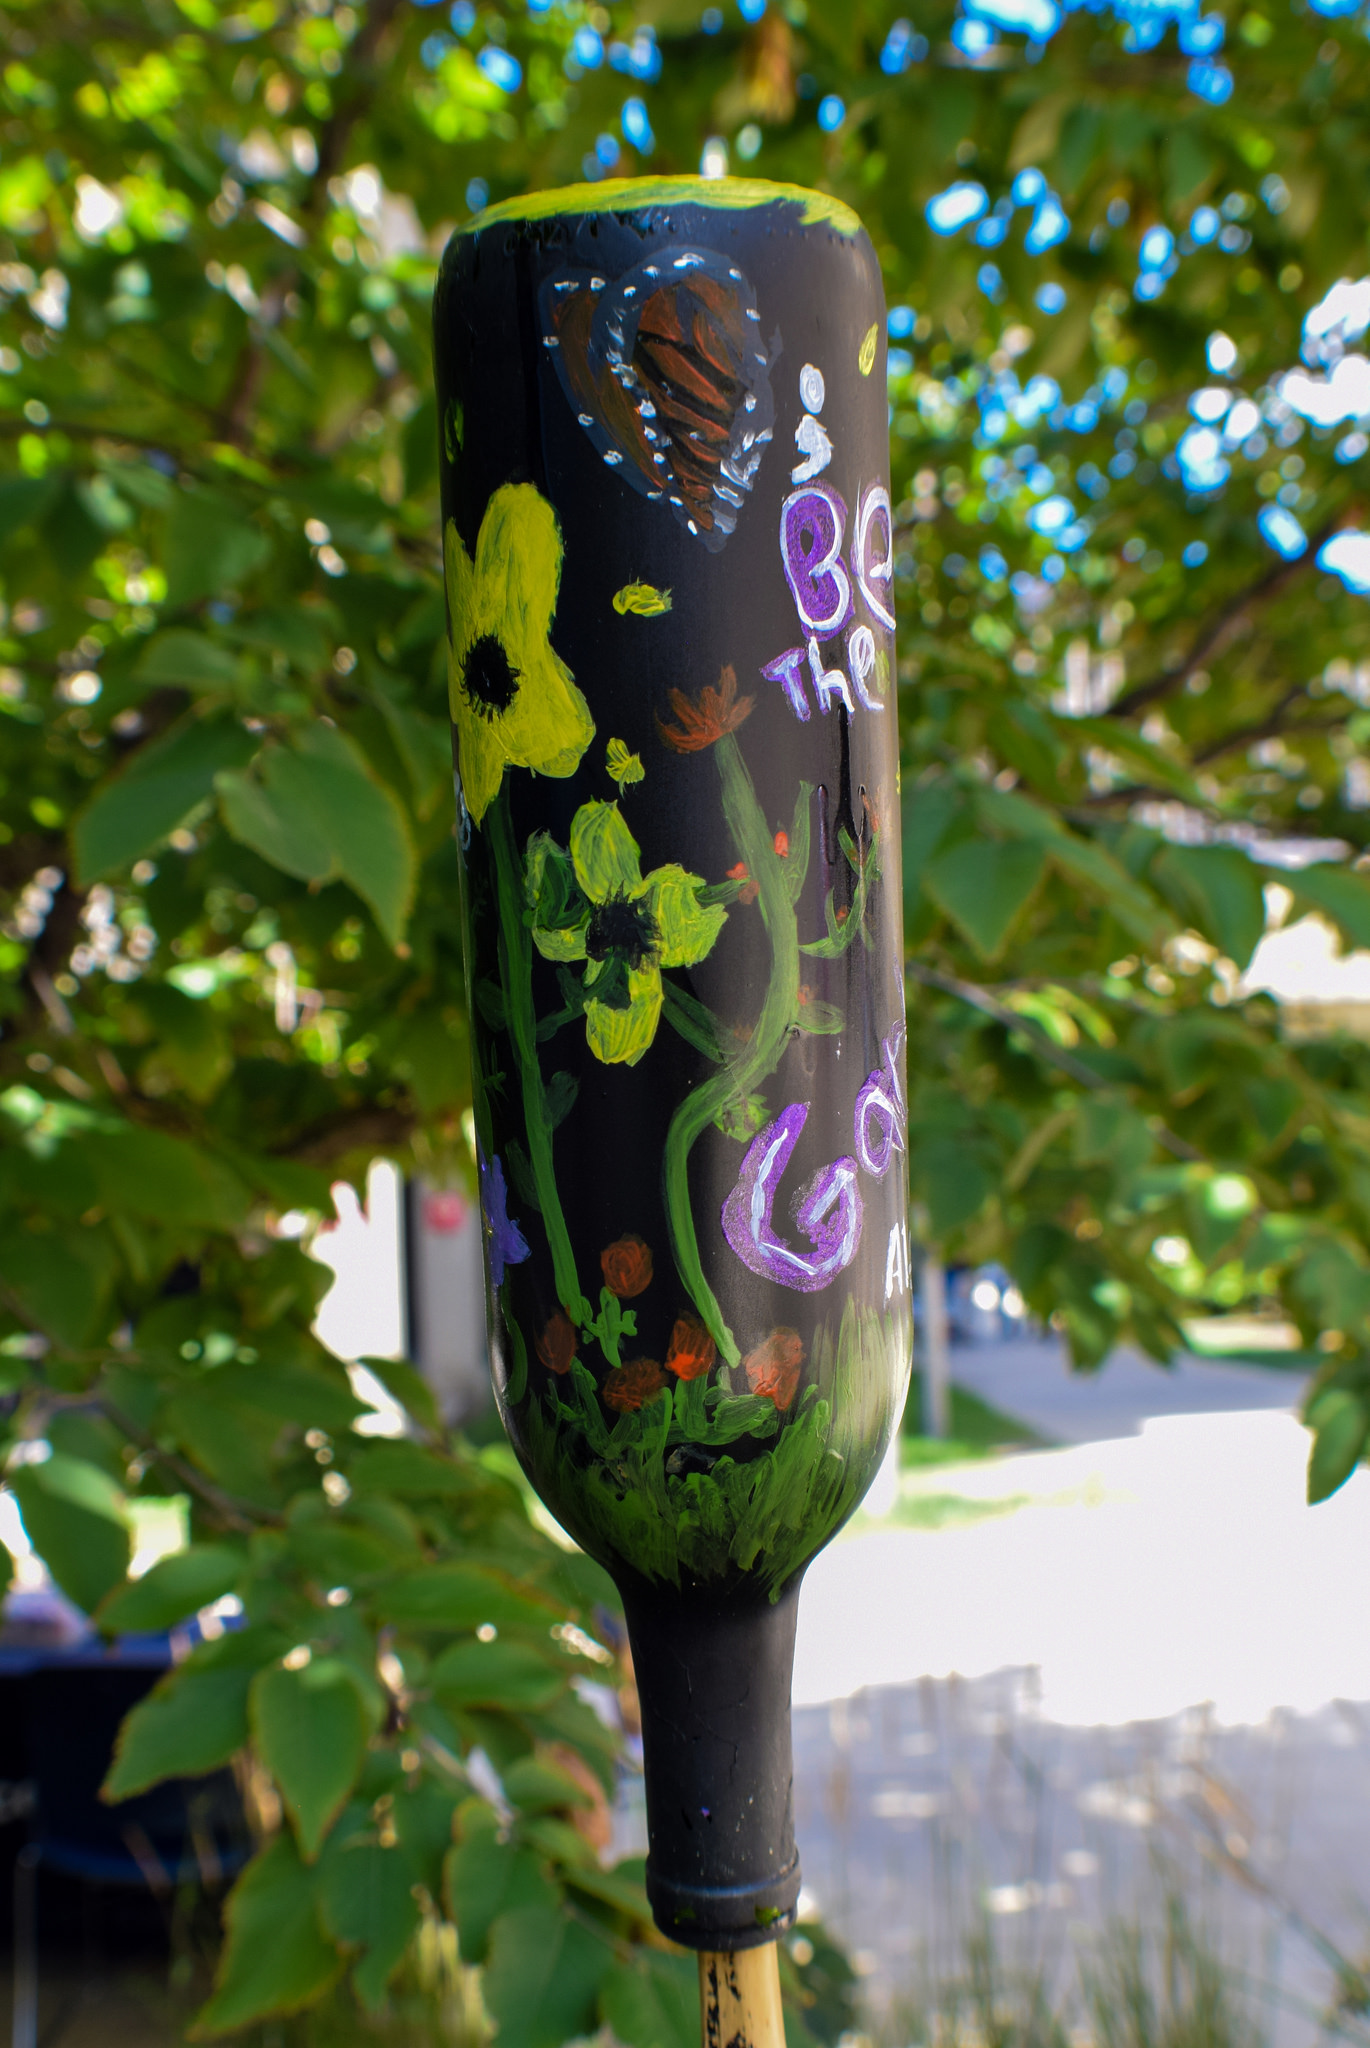 Umair's bottle with plants and monarch butterflies in a dark sky background.